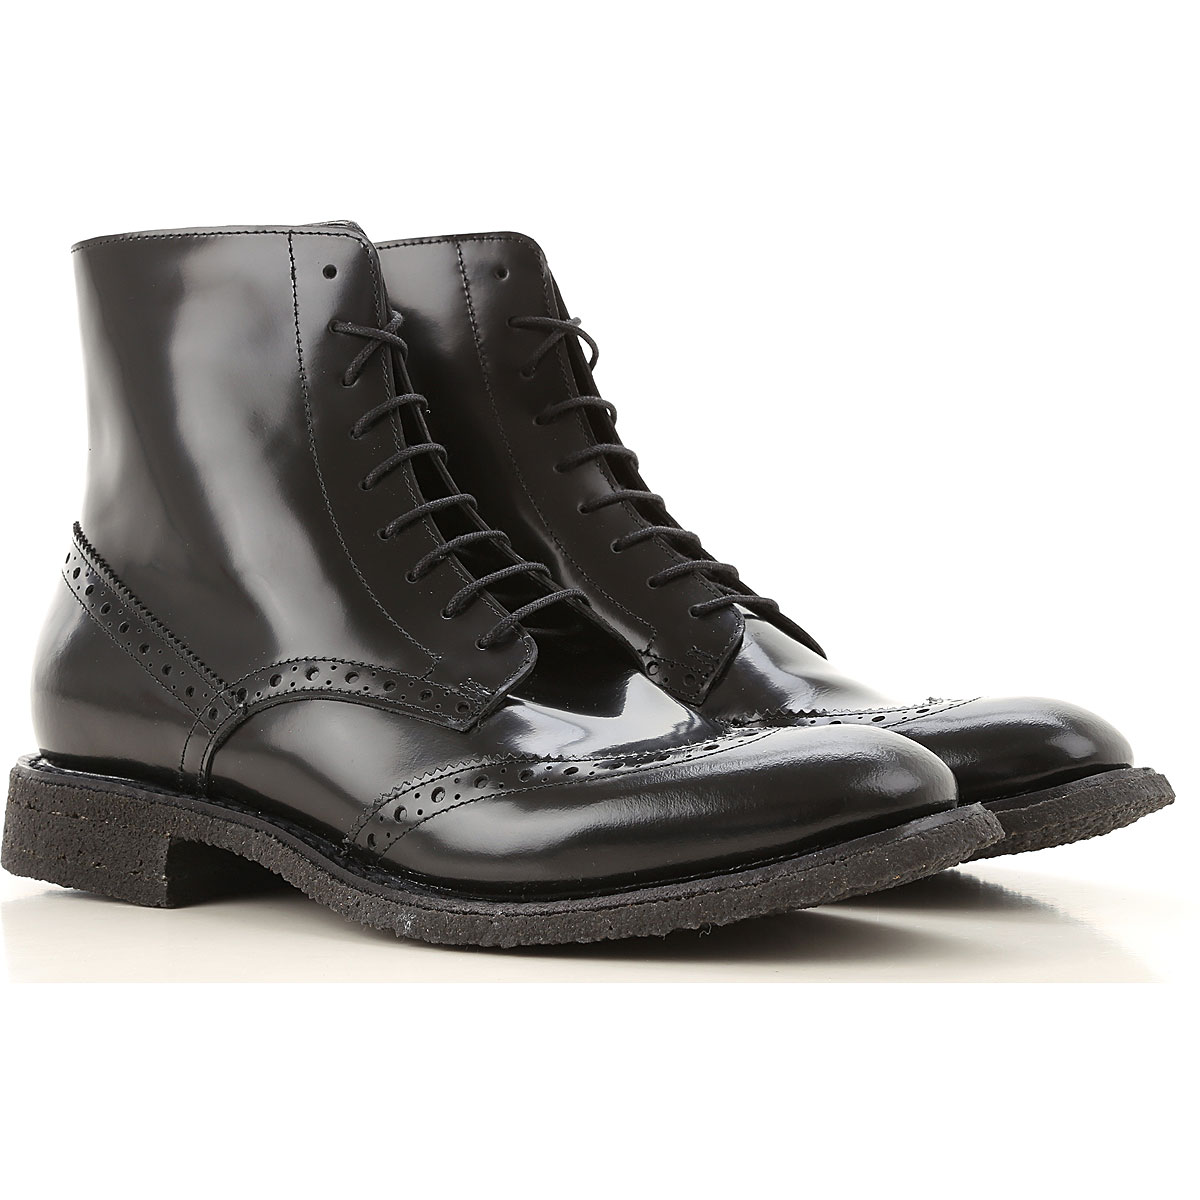 Roberto Del Carlo Boots for Women, Booties On Sale, Black, Polished, 2019, 7 8 8.5 9